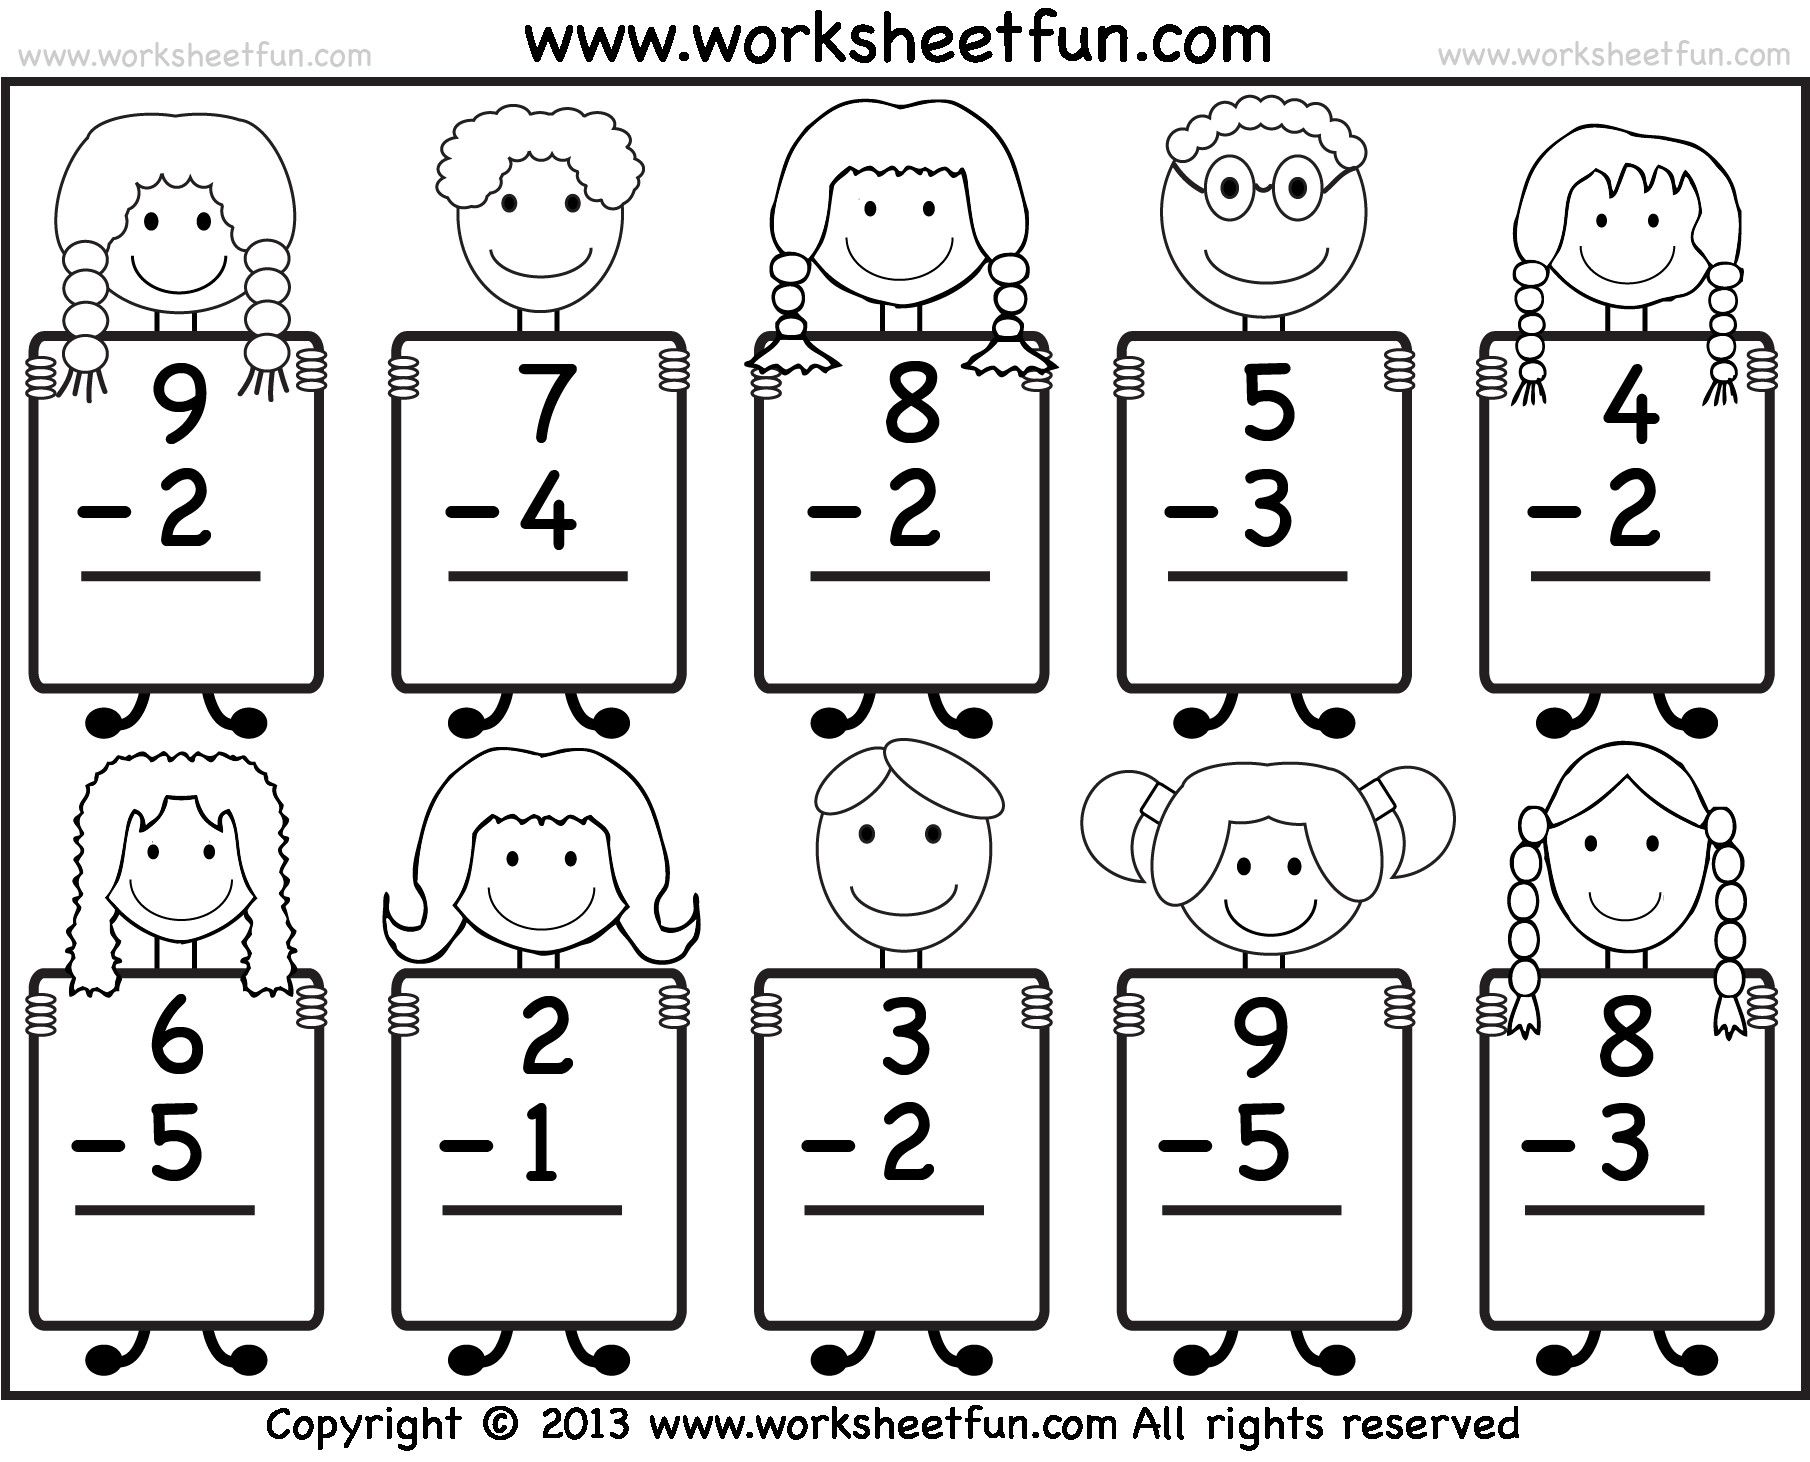 Simple Addition Worksheets To Learning Simple Addition Workshe In 2020 Kindergarten Addition Worksheets Kindergarten Math Worksheets Kindergarten Math Worksheets Free Simple addition worksheets pdf